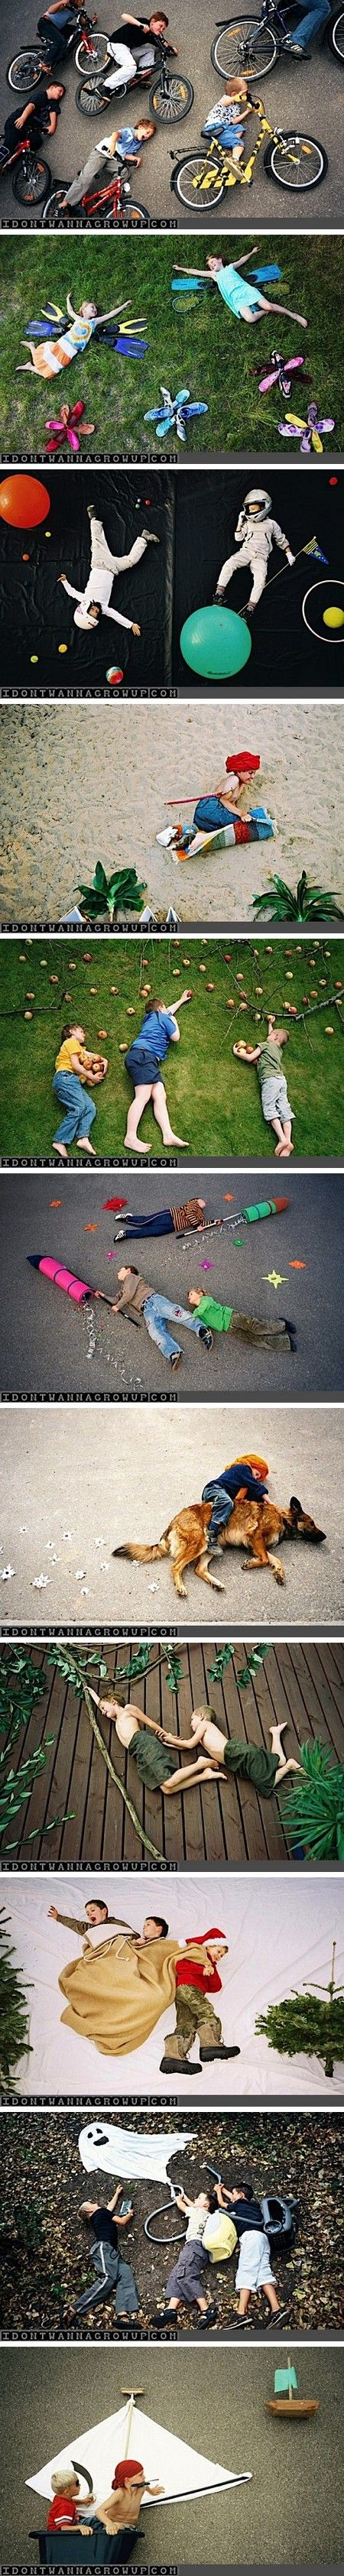 Great kids photography ideas